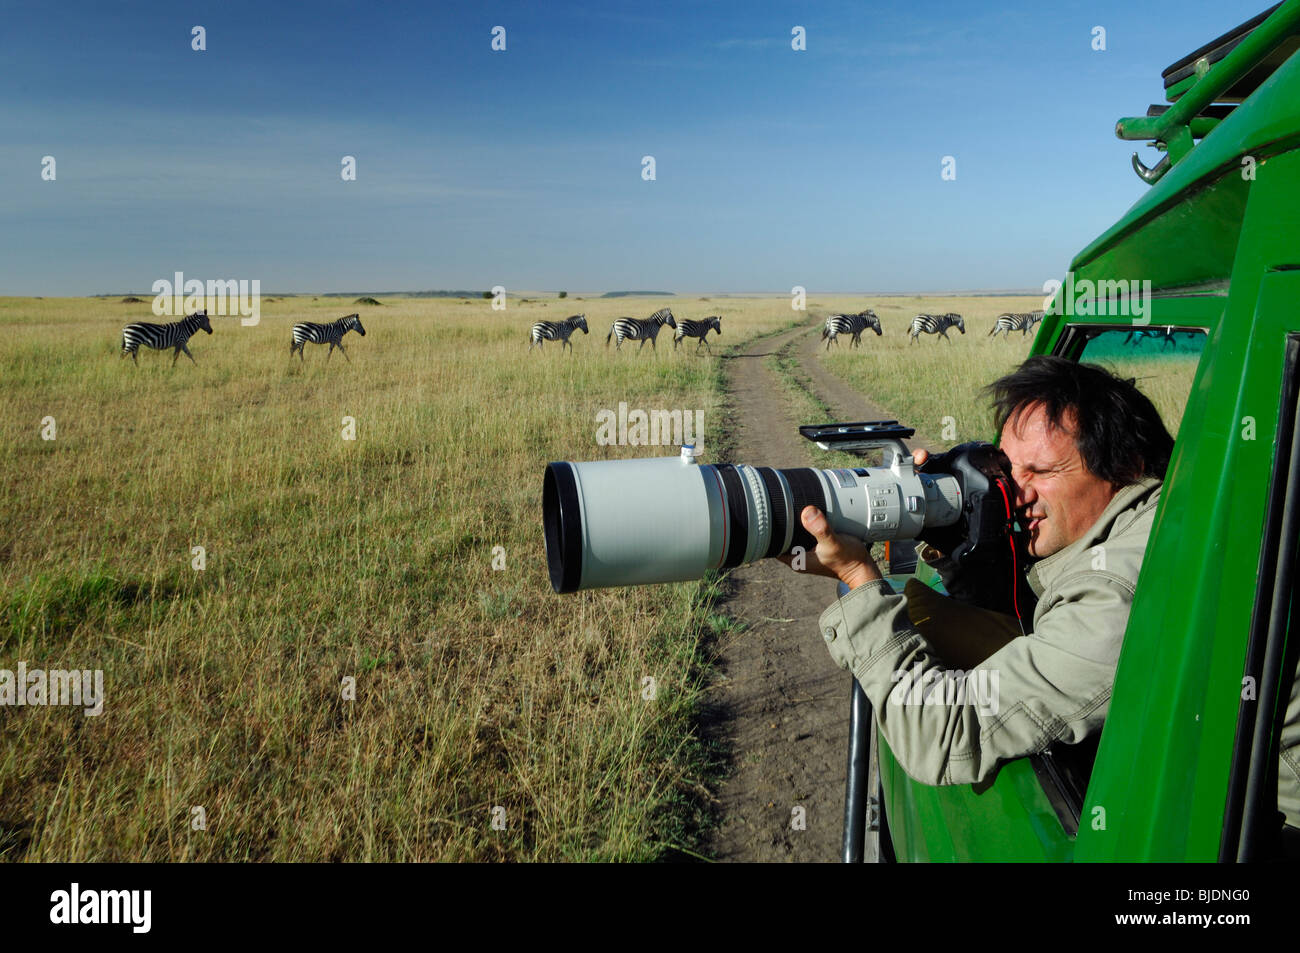 Tony Crocetta a professional french wildlife photographer shooting with tele lens zebras. Kenya Masai Mara NP - Stock Image